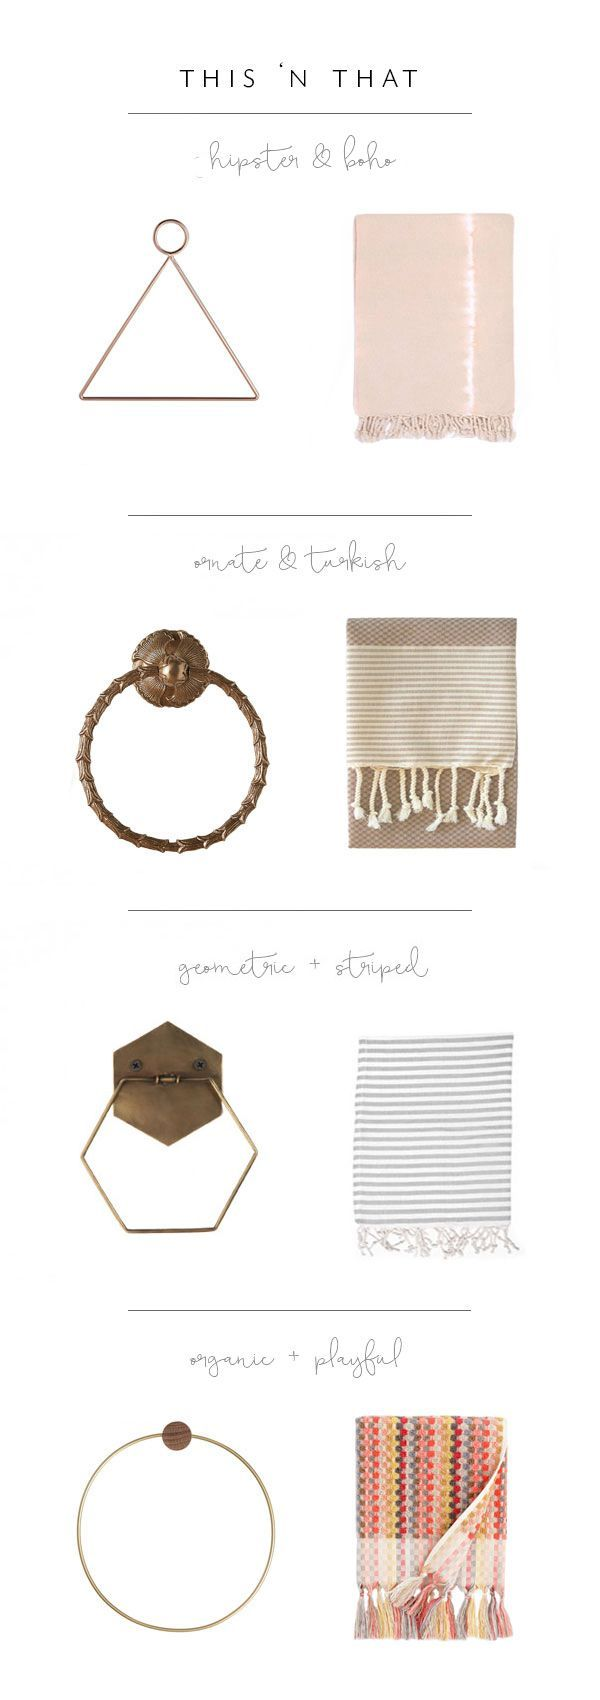 hand towel and towel ring pairings - boho eclectic | via coco kelley